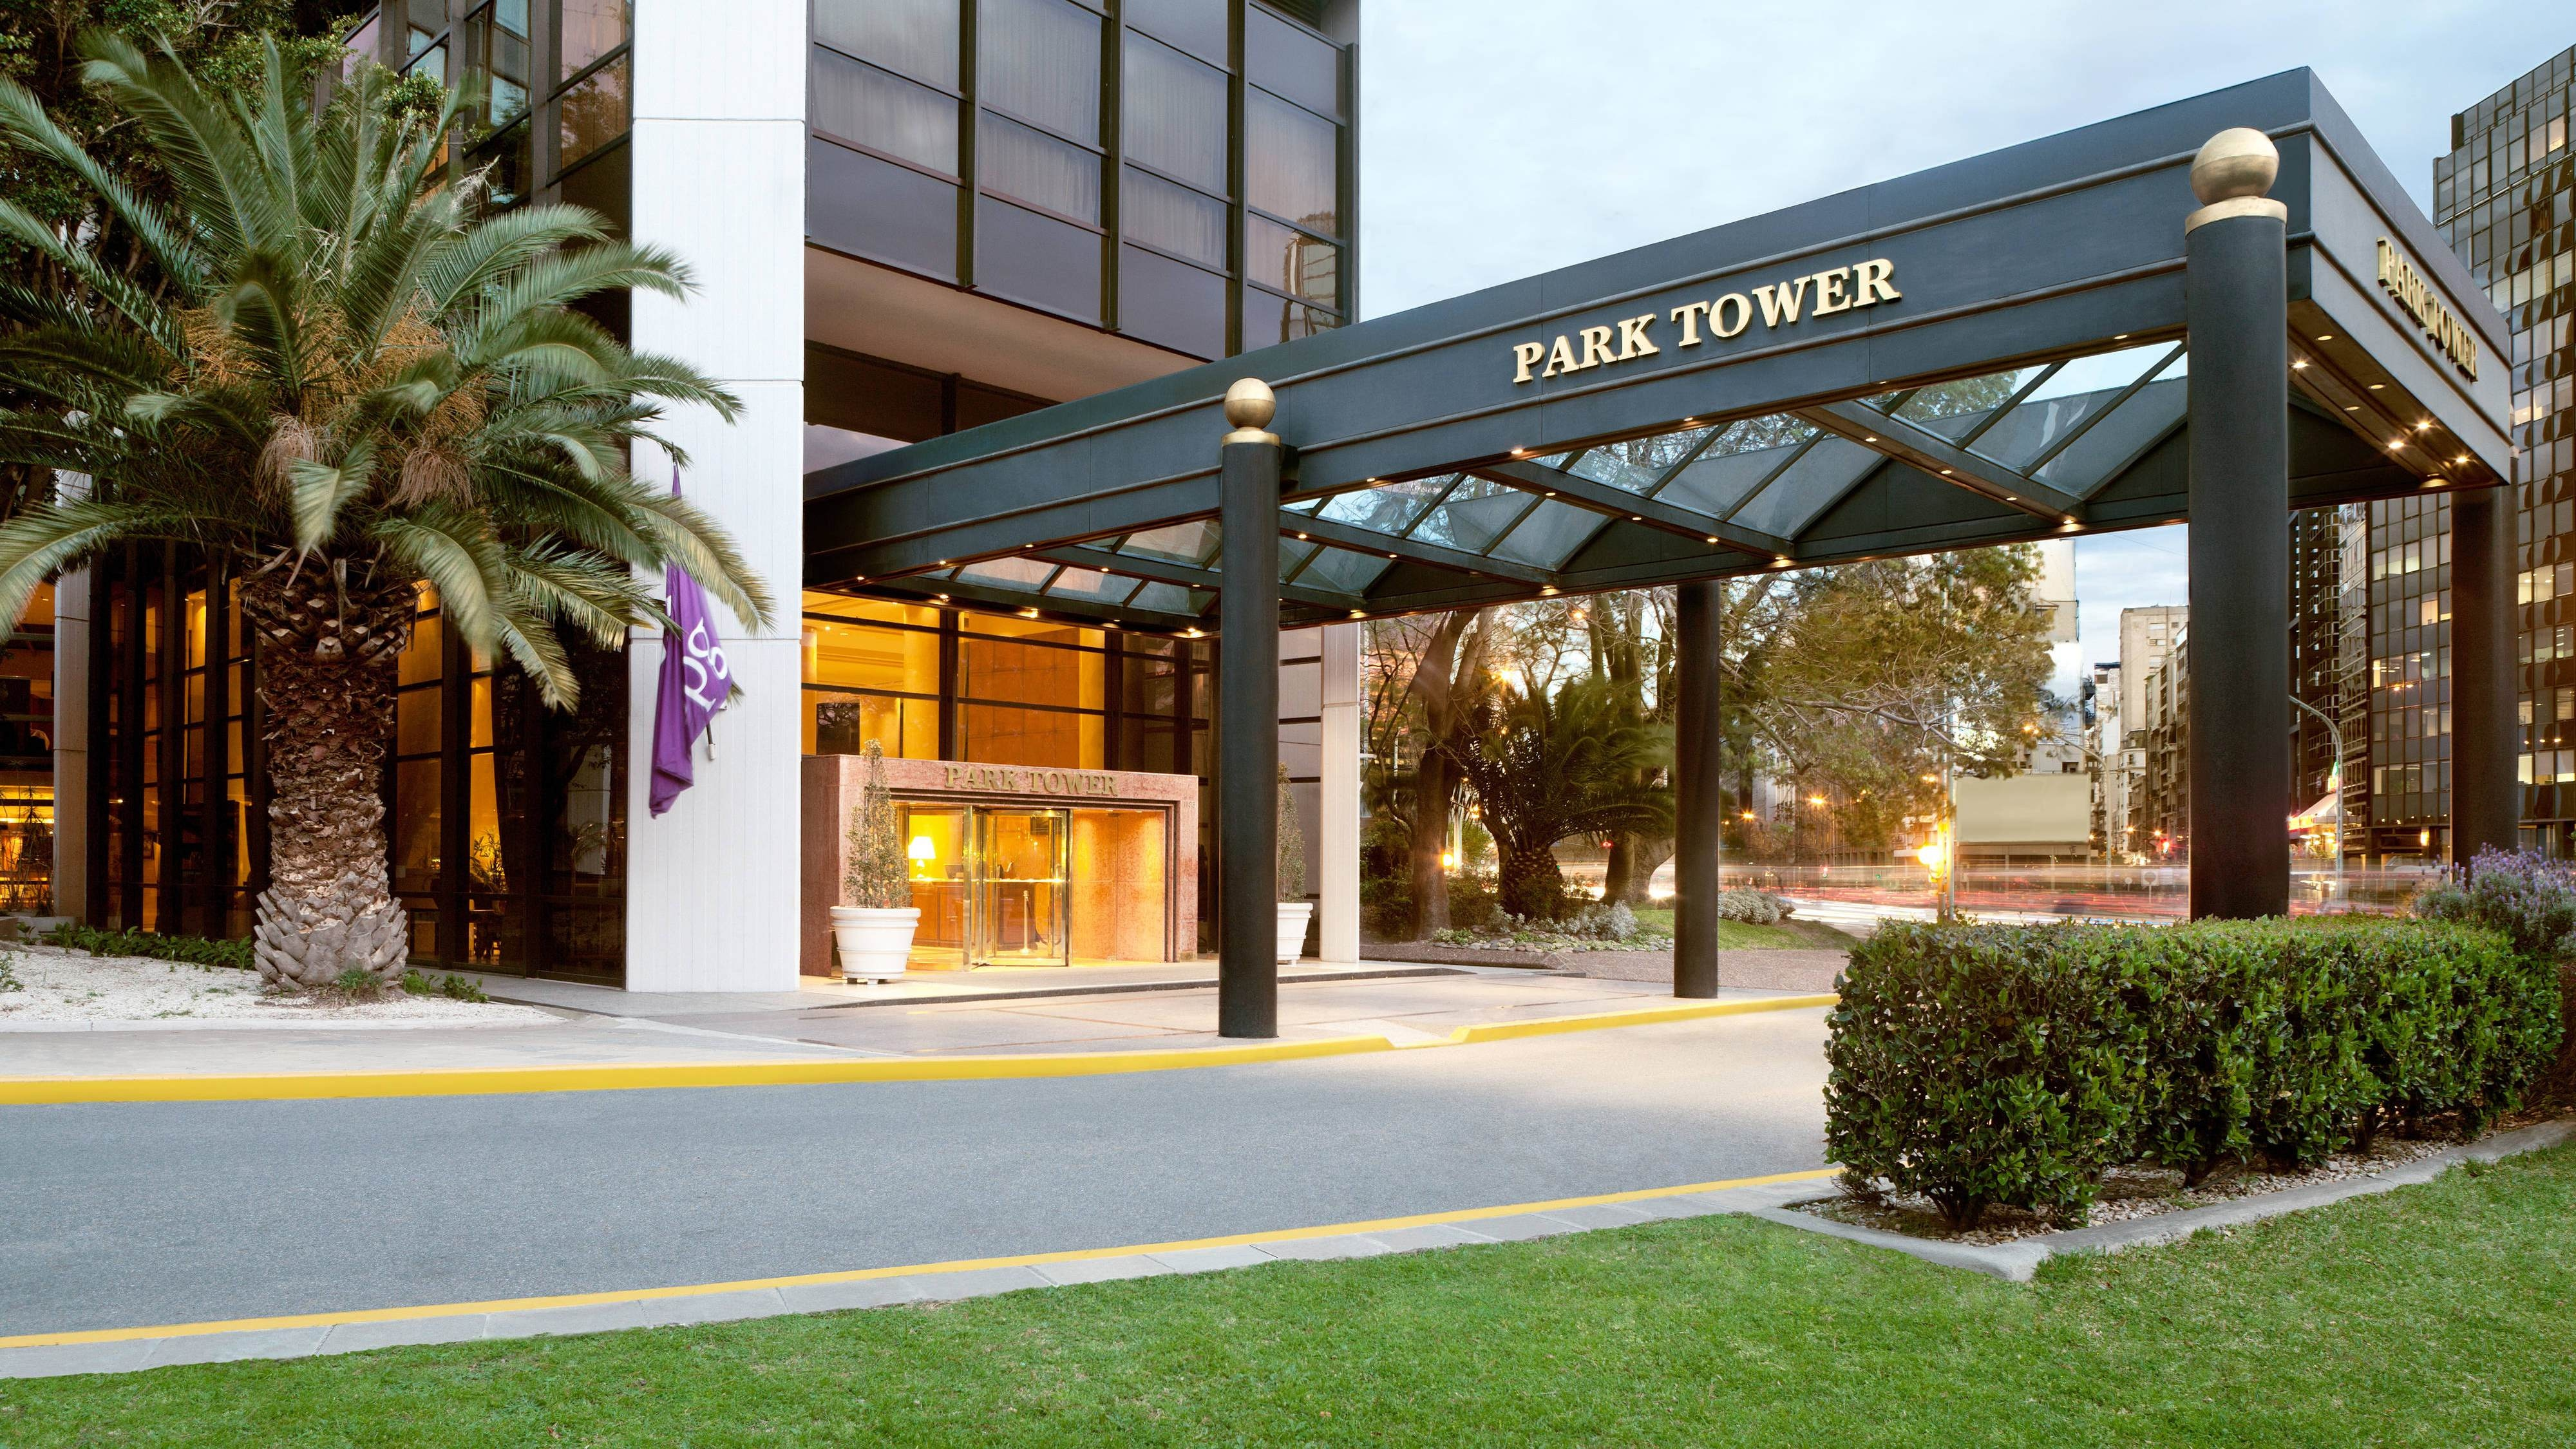 Park Tower Entrance